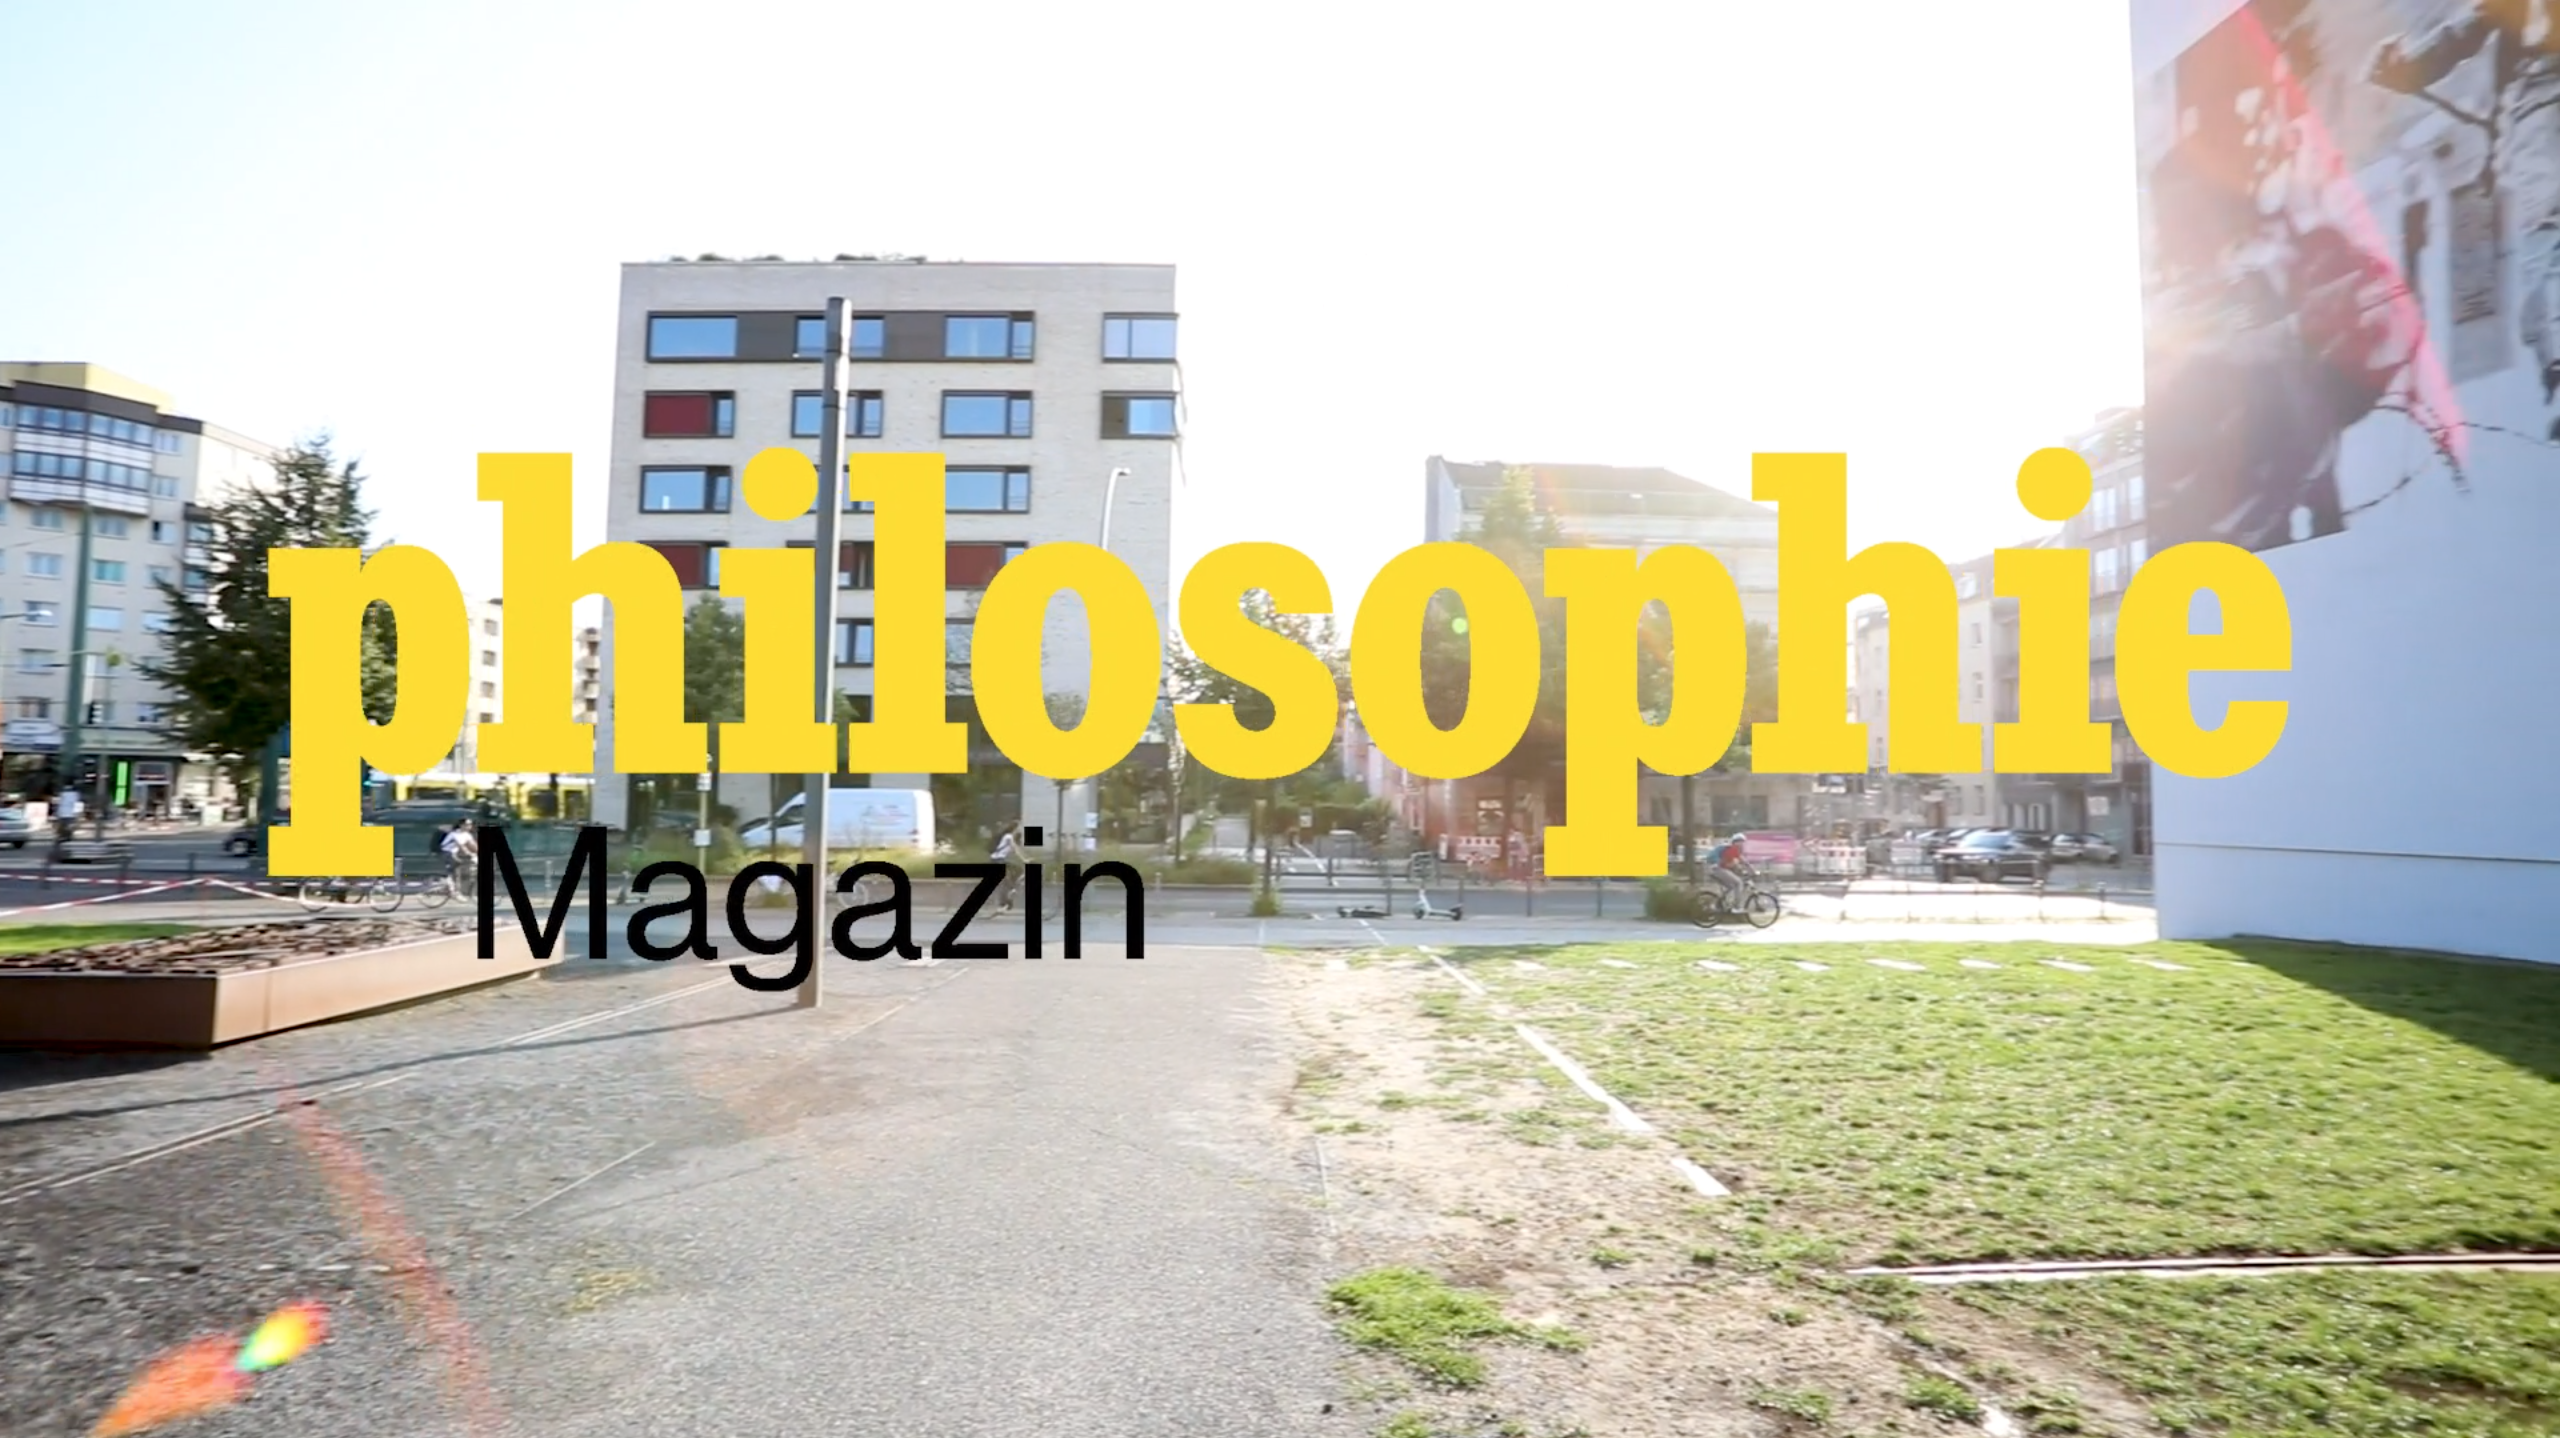 Print Relaunch Philosophie Magazin © nXm film production